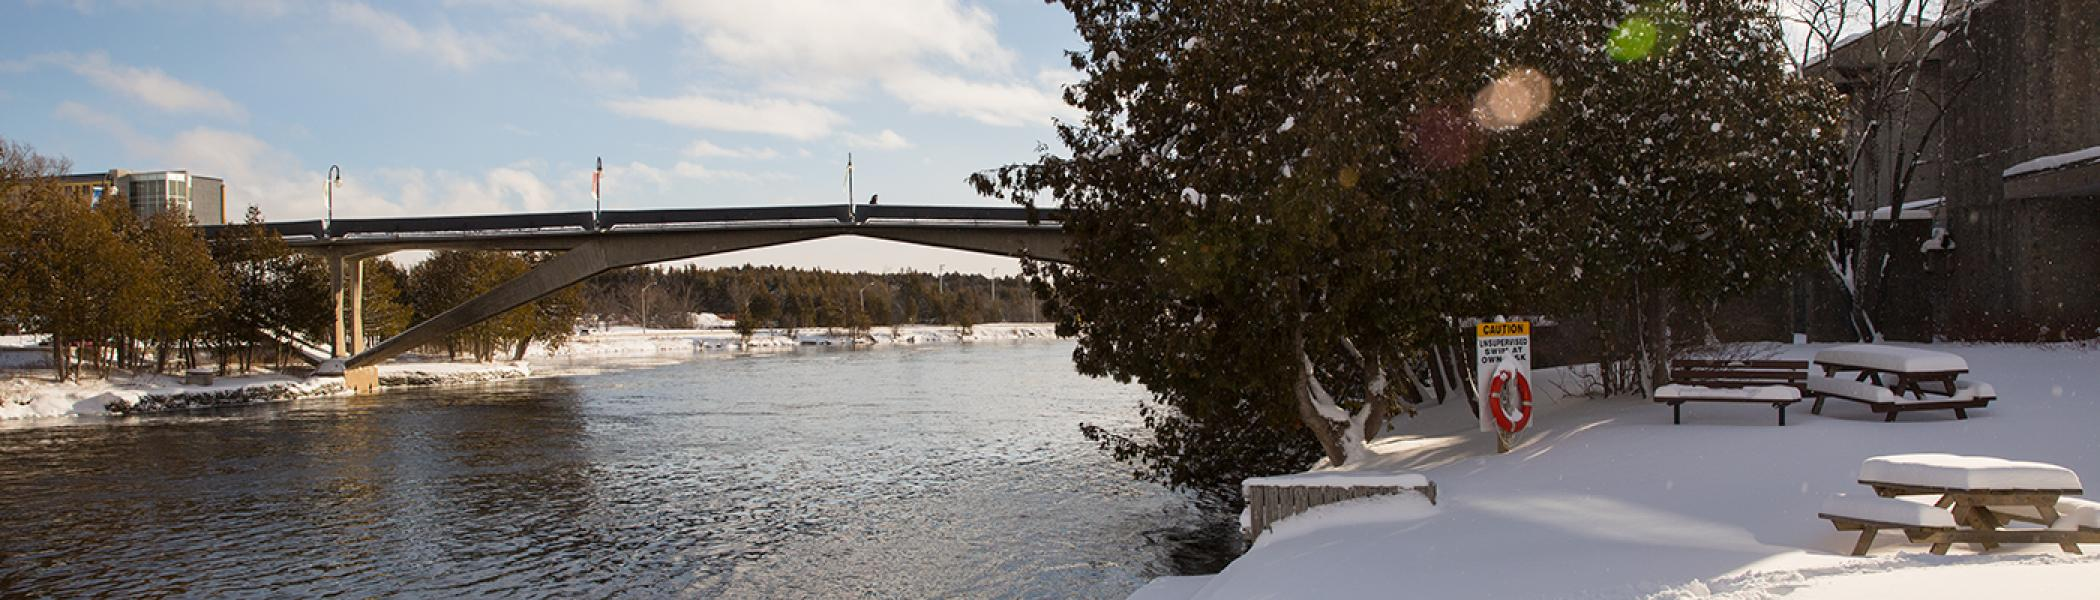 Exterior view of the Faryon bridge in the winter snow and sun from the Champlain College bank of the Otonabee river